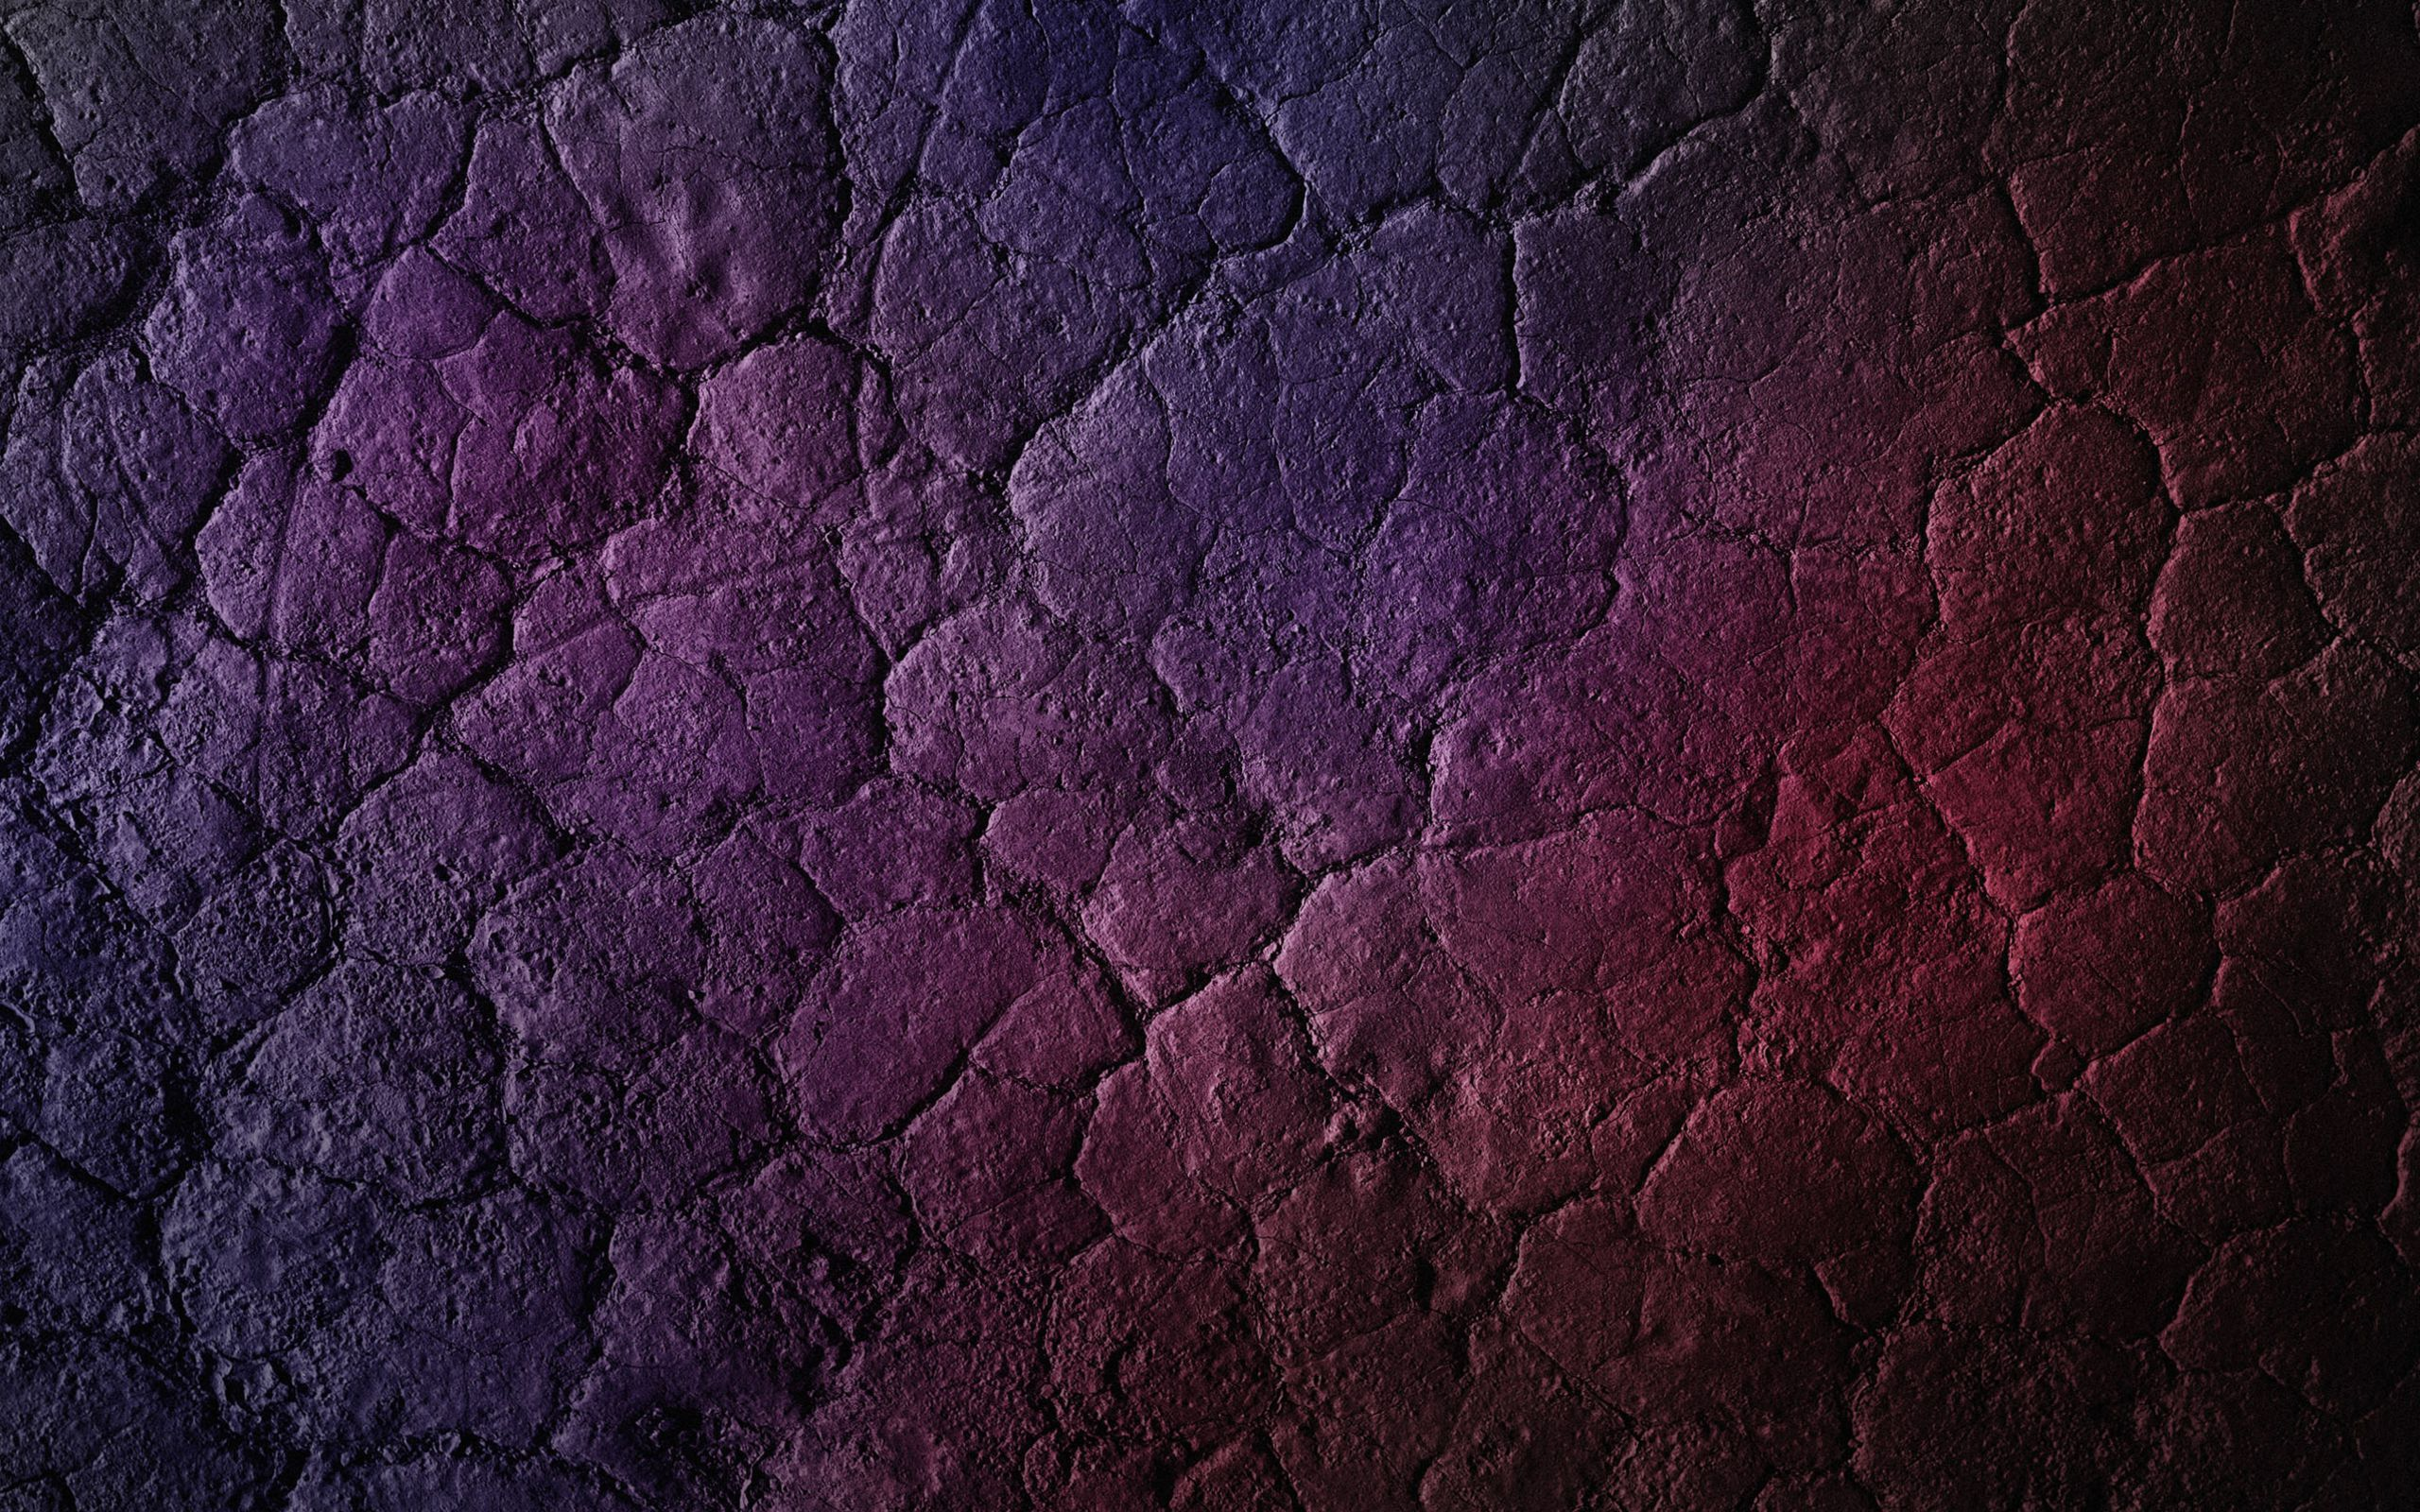 Backgrounds (Textures)